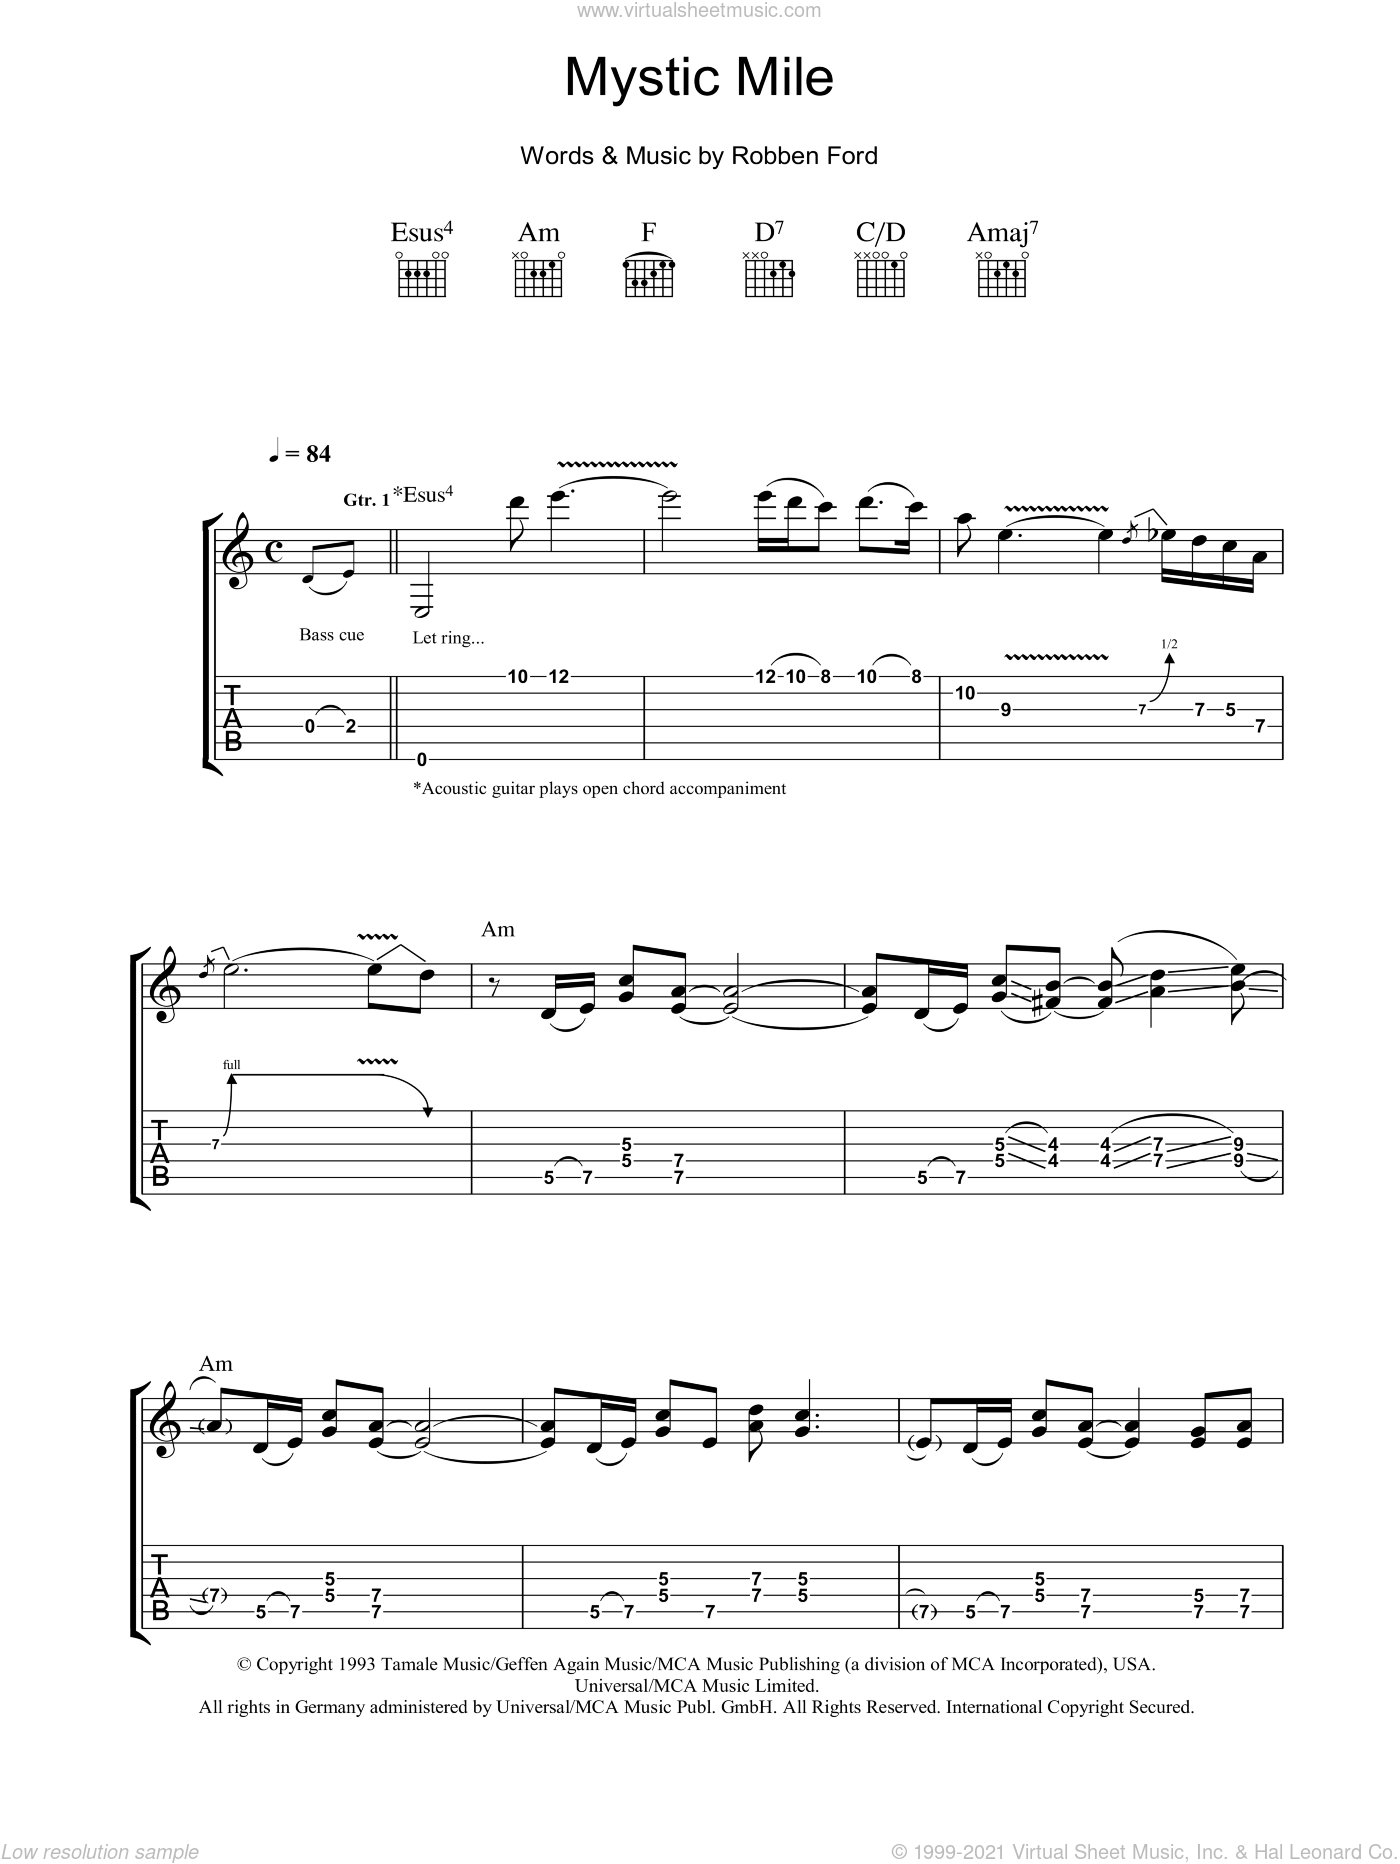 Mystic Mile sheet music for guitar (tablature) by Robben Ford, intermediate skill level